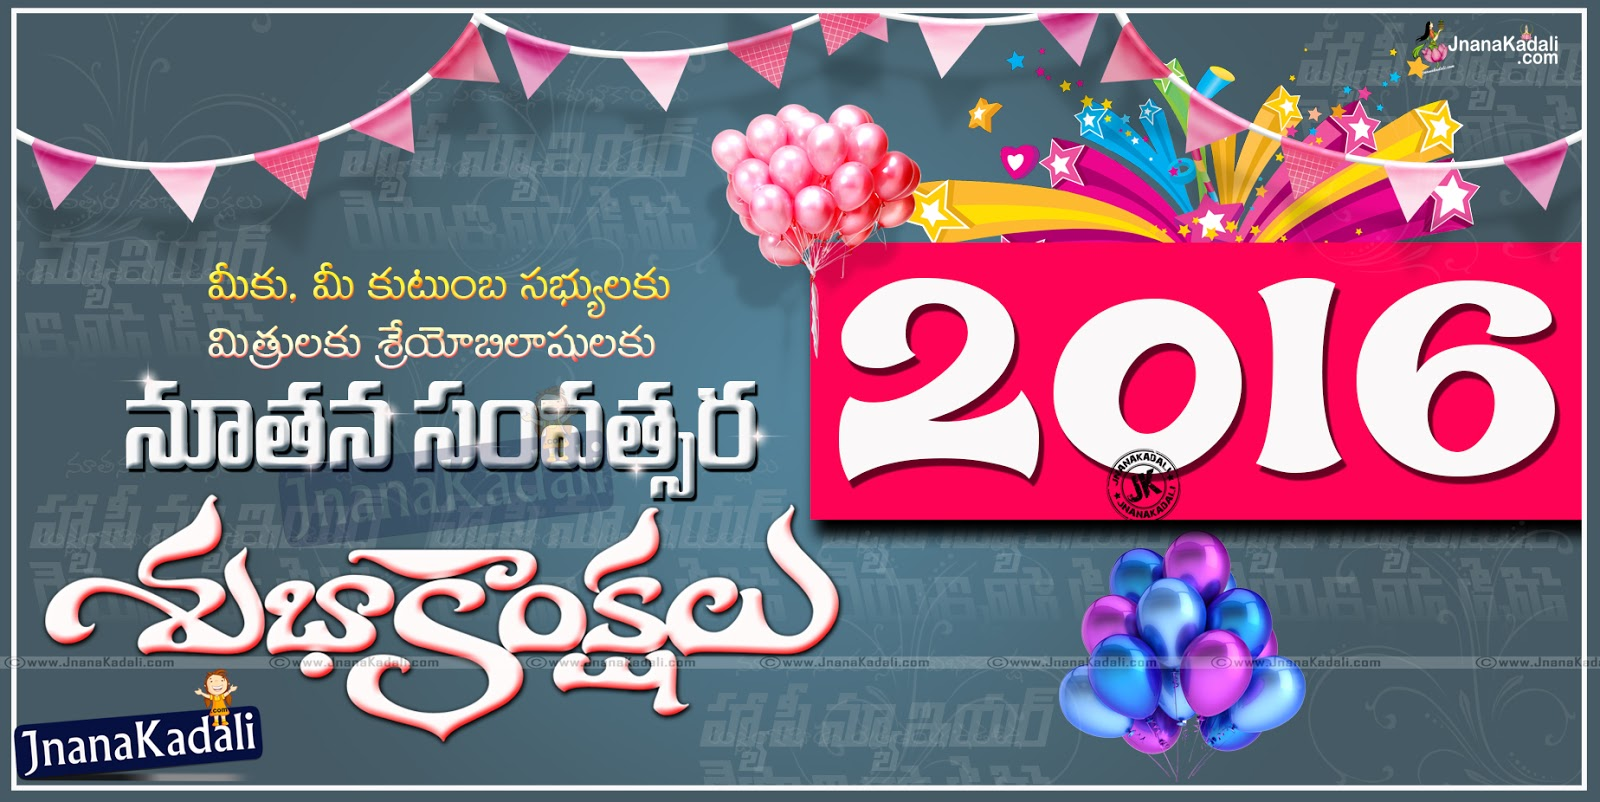 Telugu happy new year greetings wallpapers with beautiful quotes best telugu new year greetings wishes wallpapers nutana samvatsara shubhakankshalu new year greetings in telugu best new year greetings for friends m4hsunfo